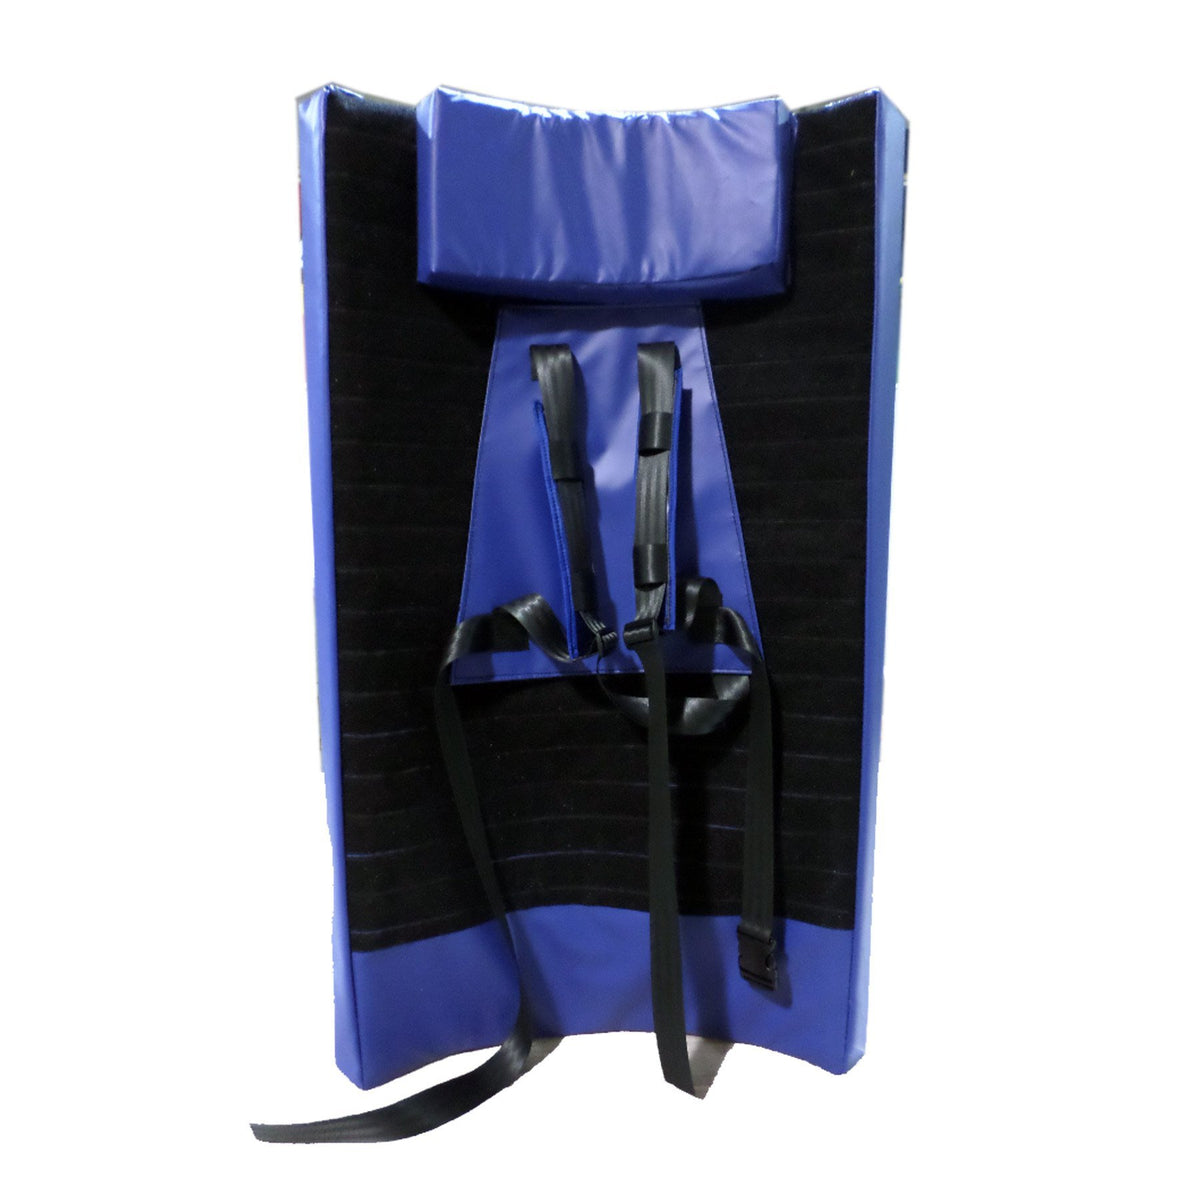 Rhino Rugby Climbing Bag Shield - www.therugbyshop.com